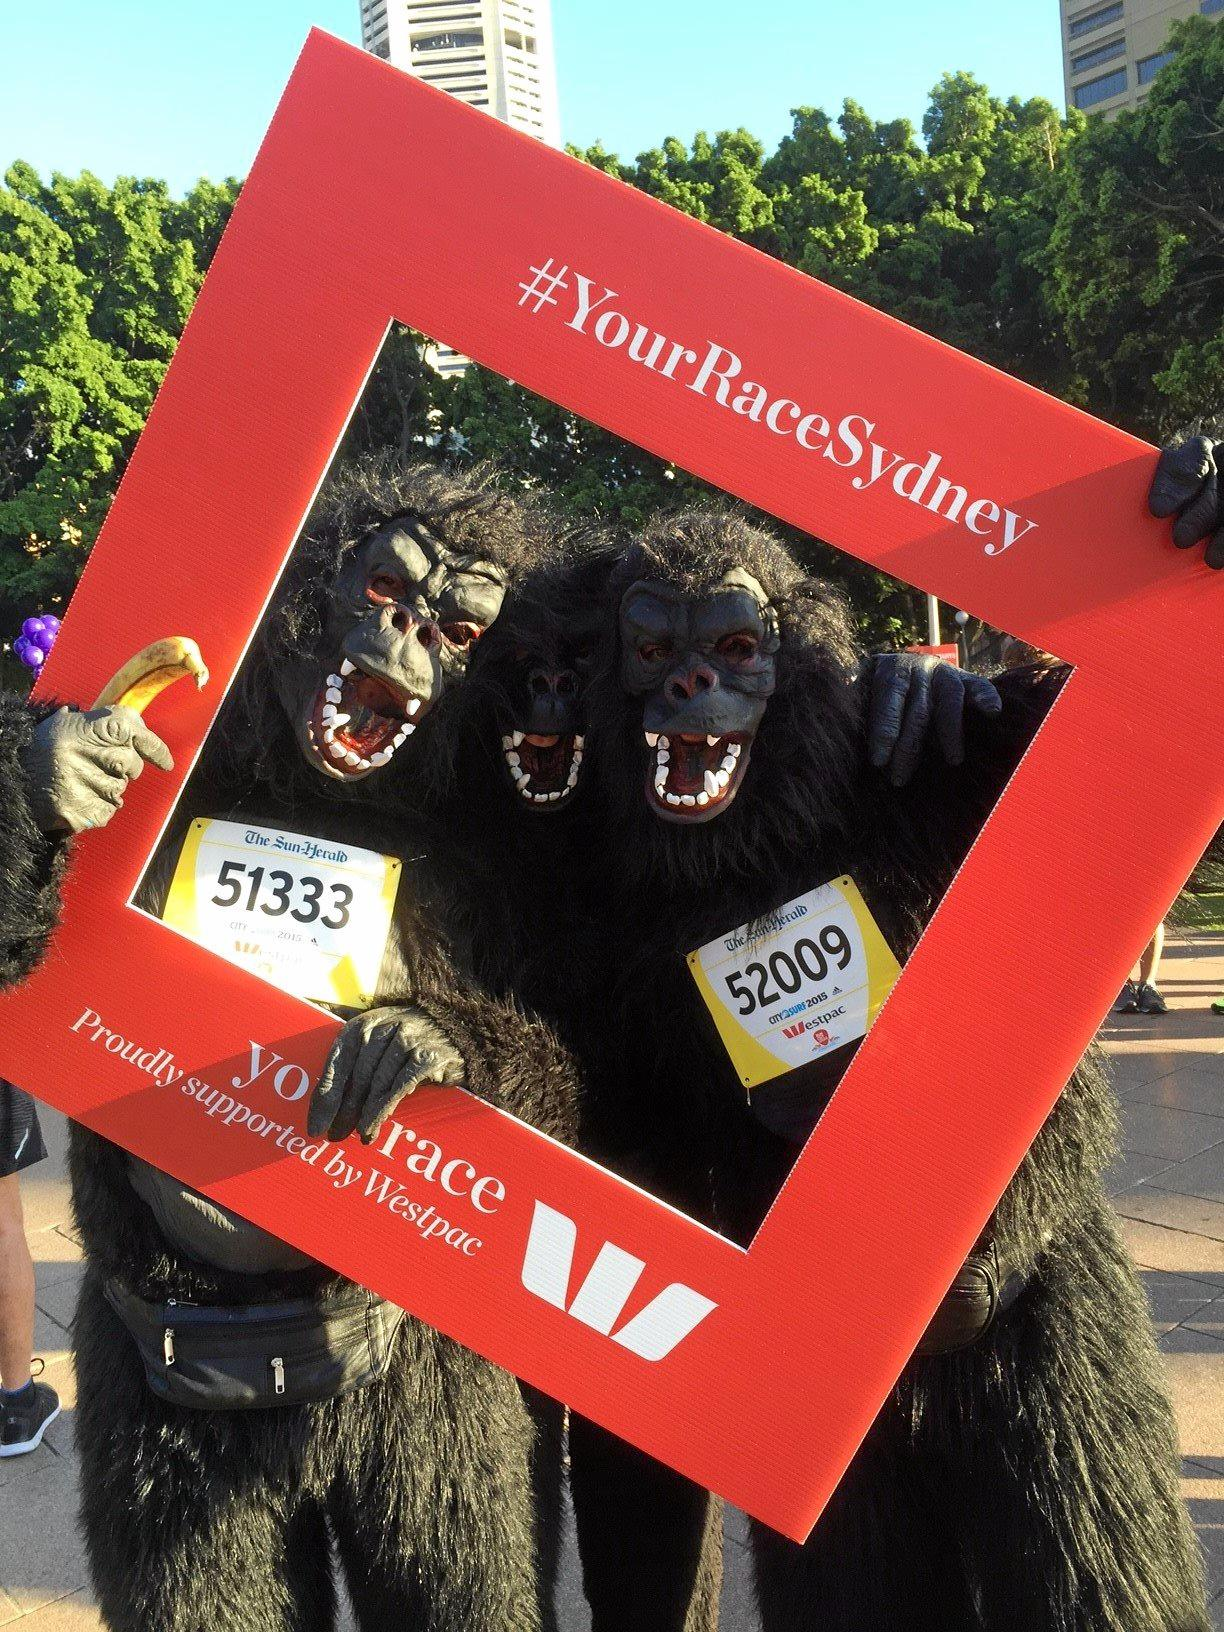 This is the 33rd year the Gorillas have run in the City 2 Surf.